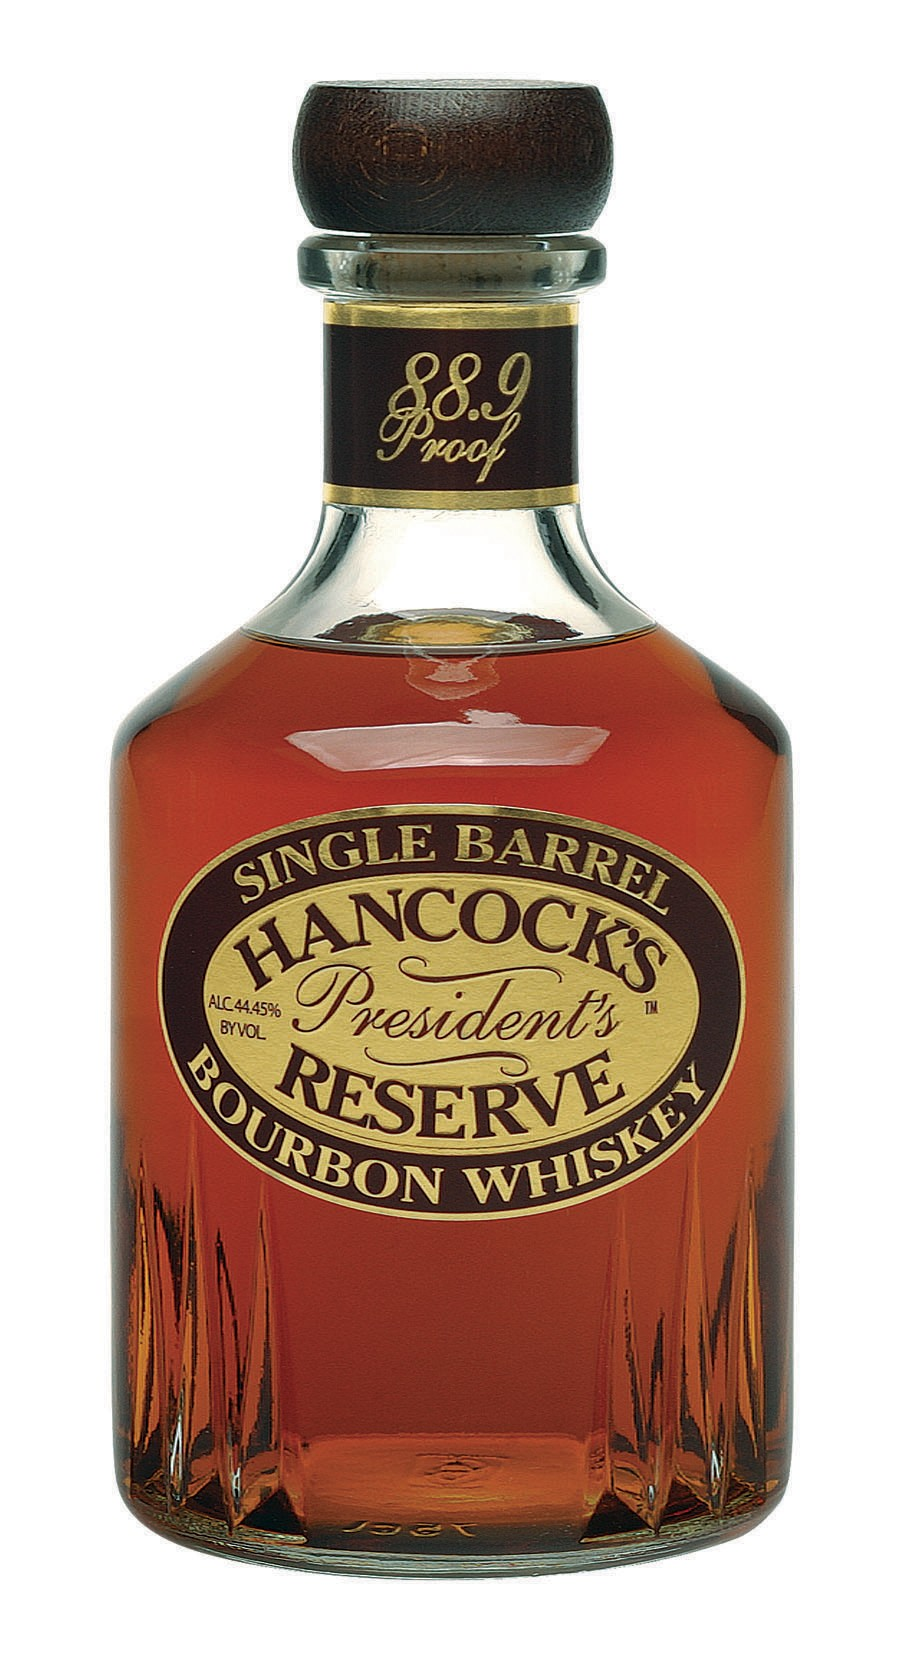 Hancock's Reserve Single Barrel